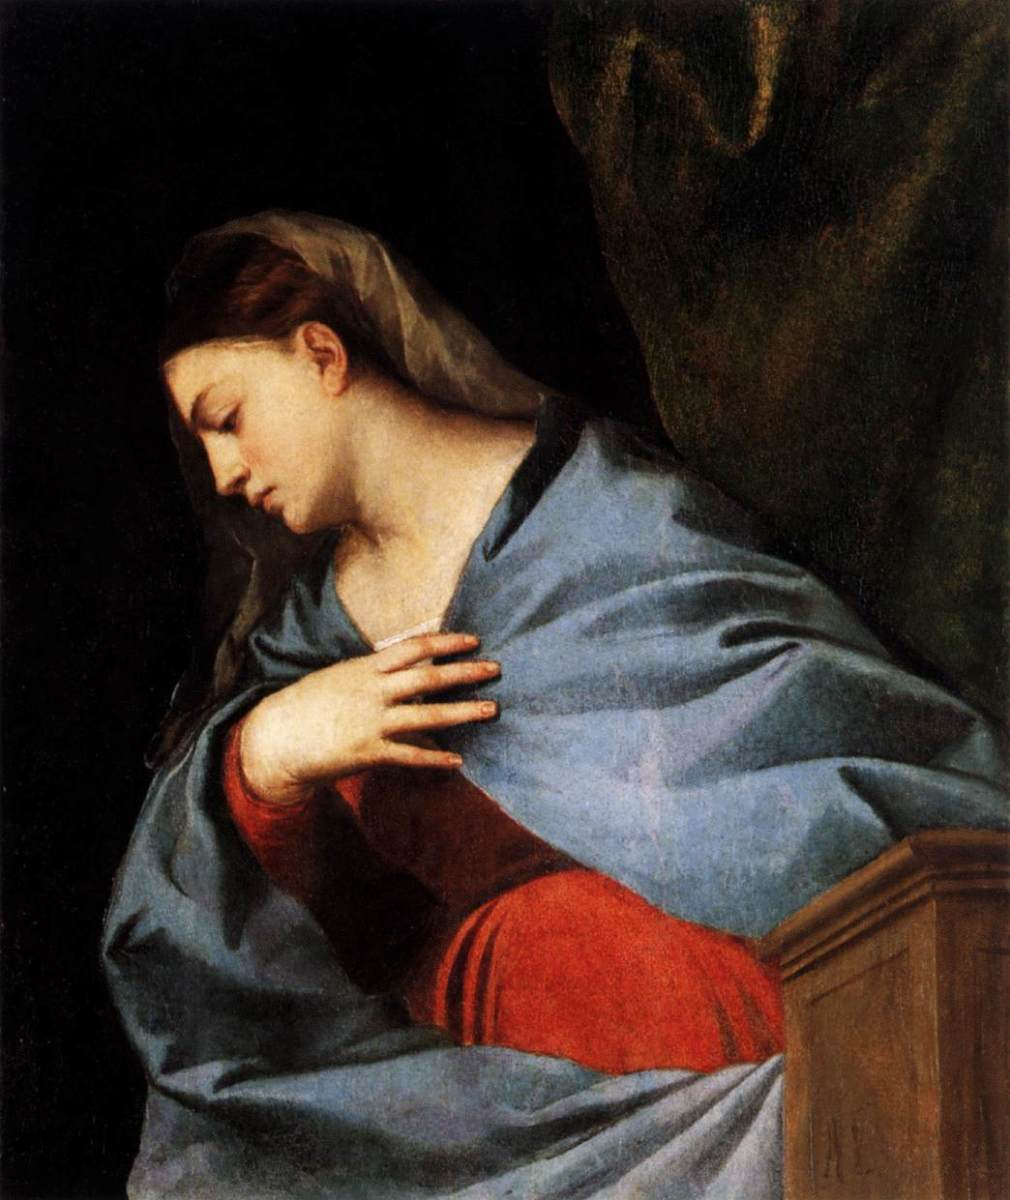 Virgin Mary, Titian